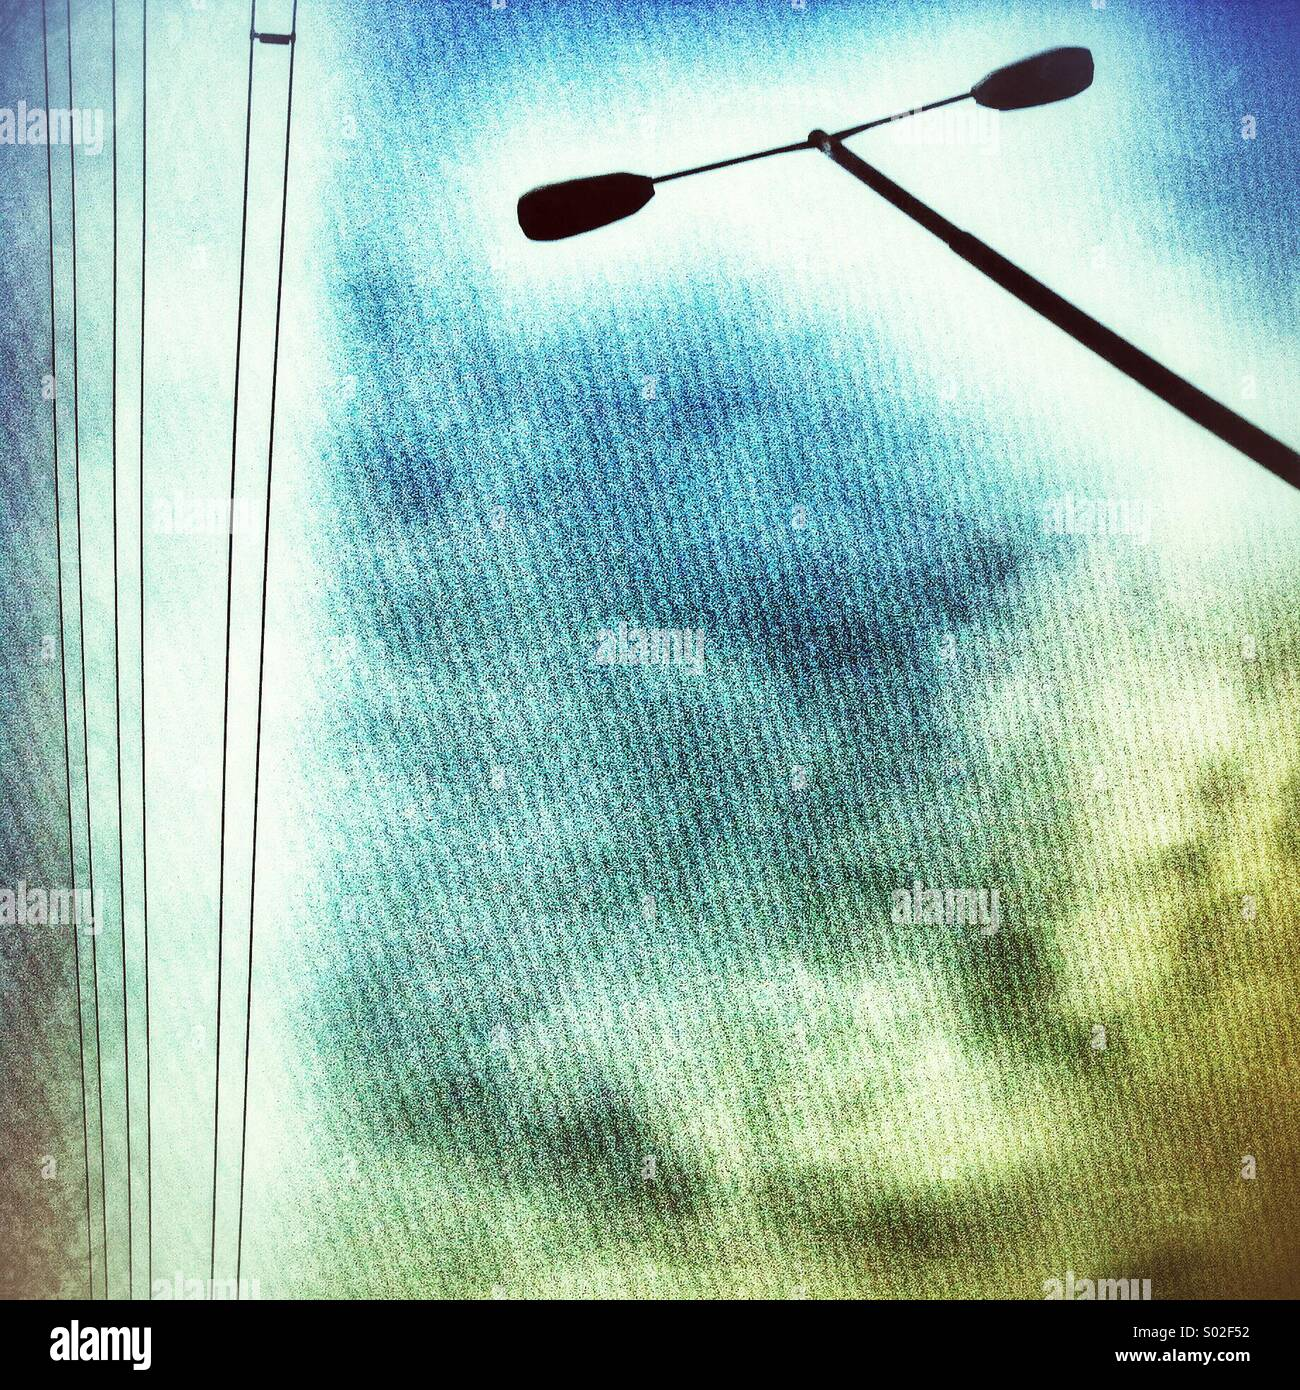 Street Light and Power Lines - Stock Image